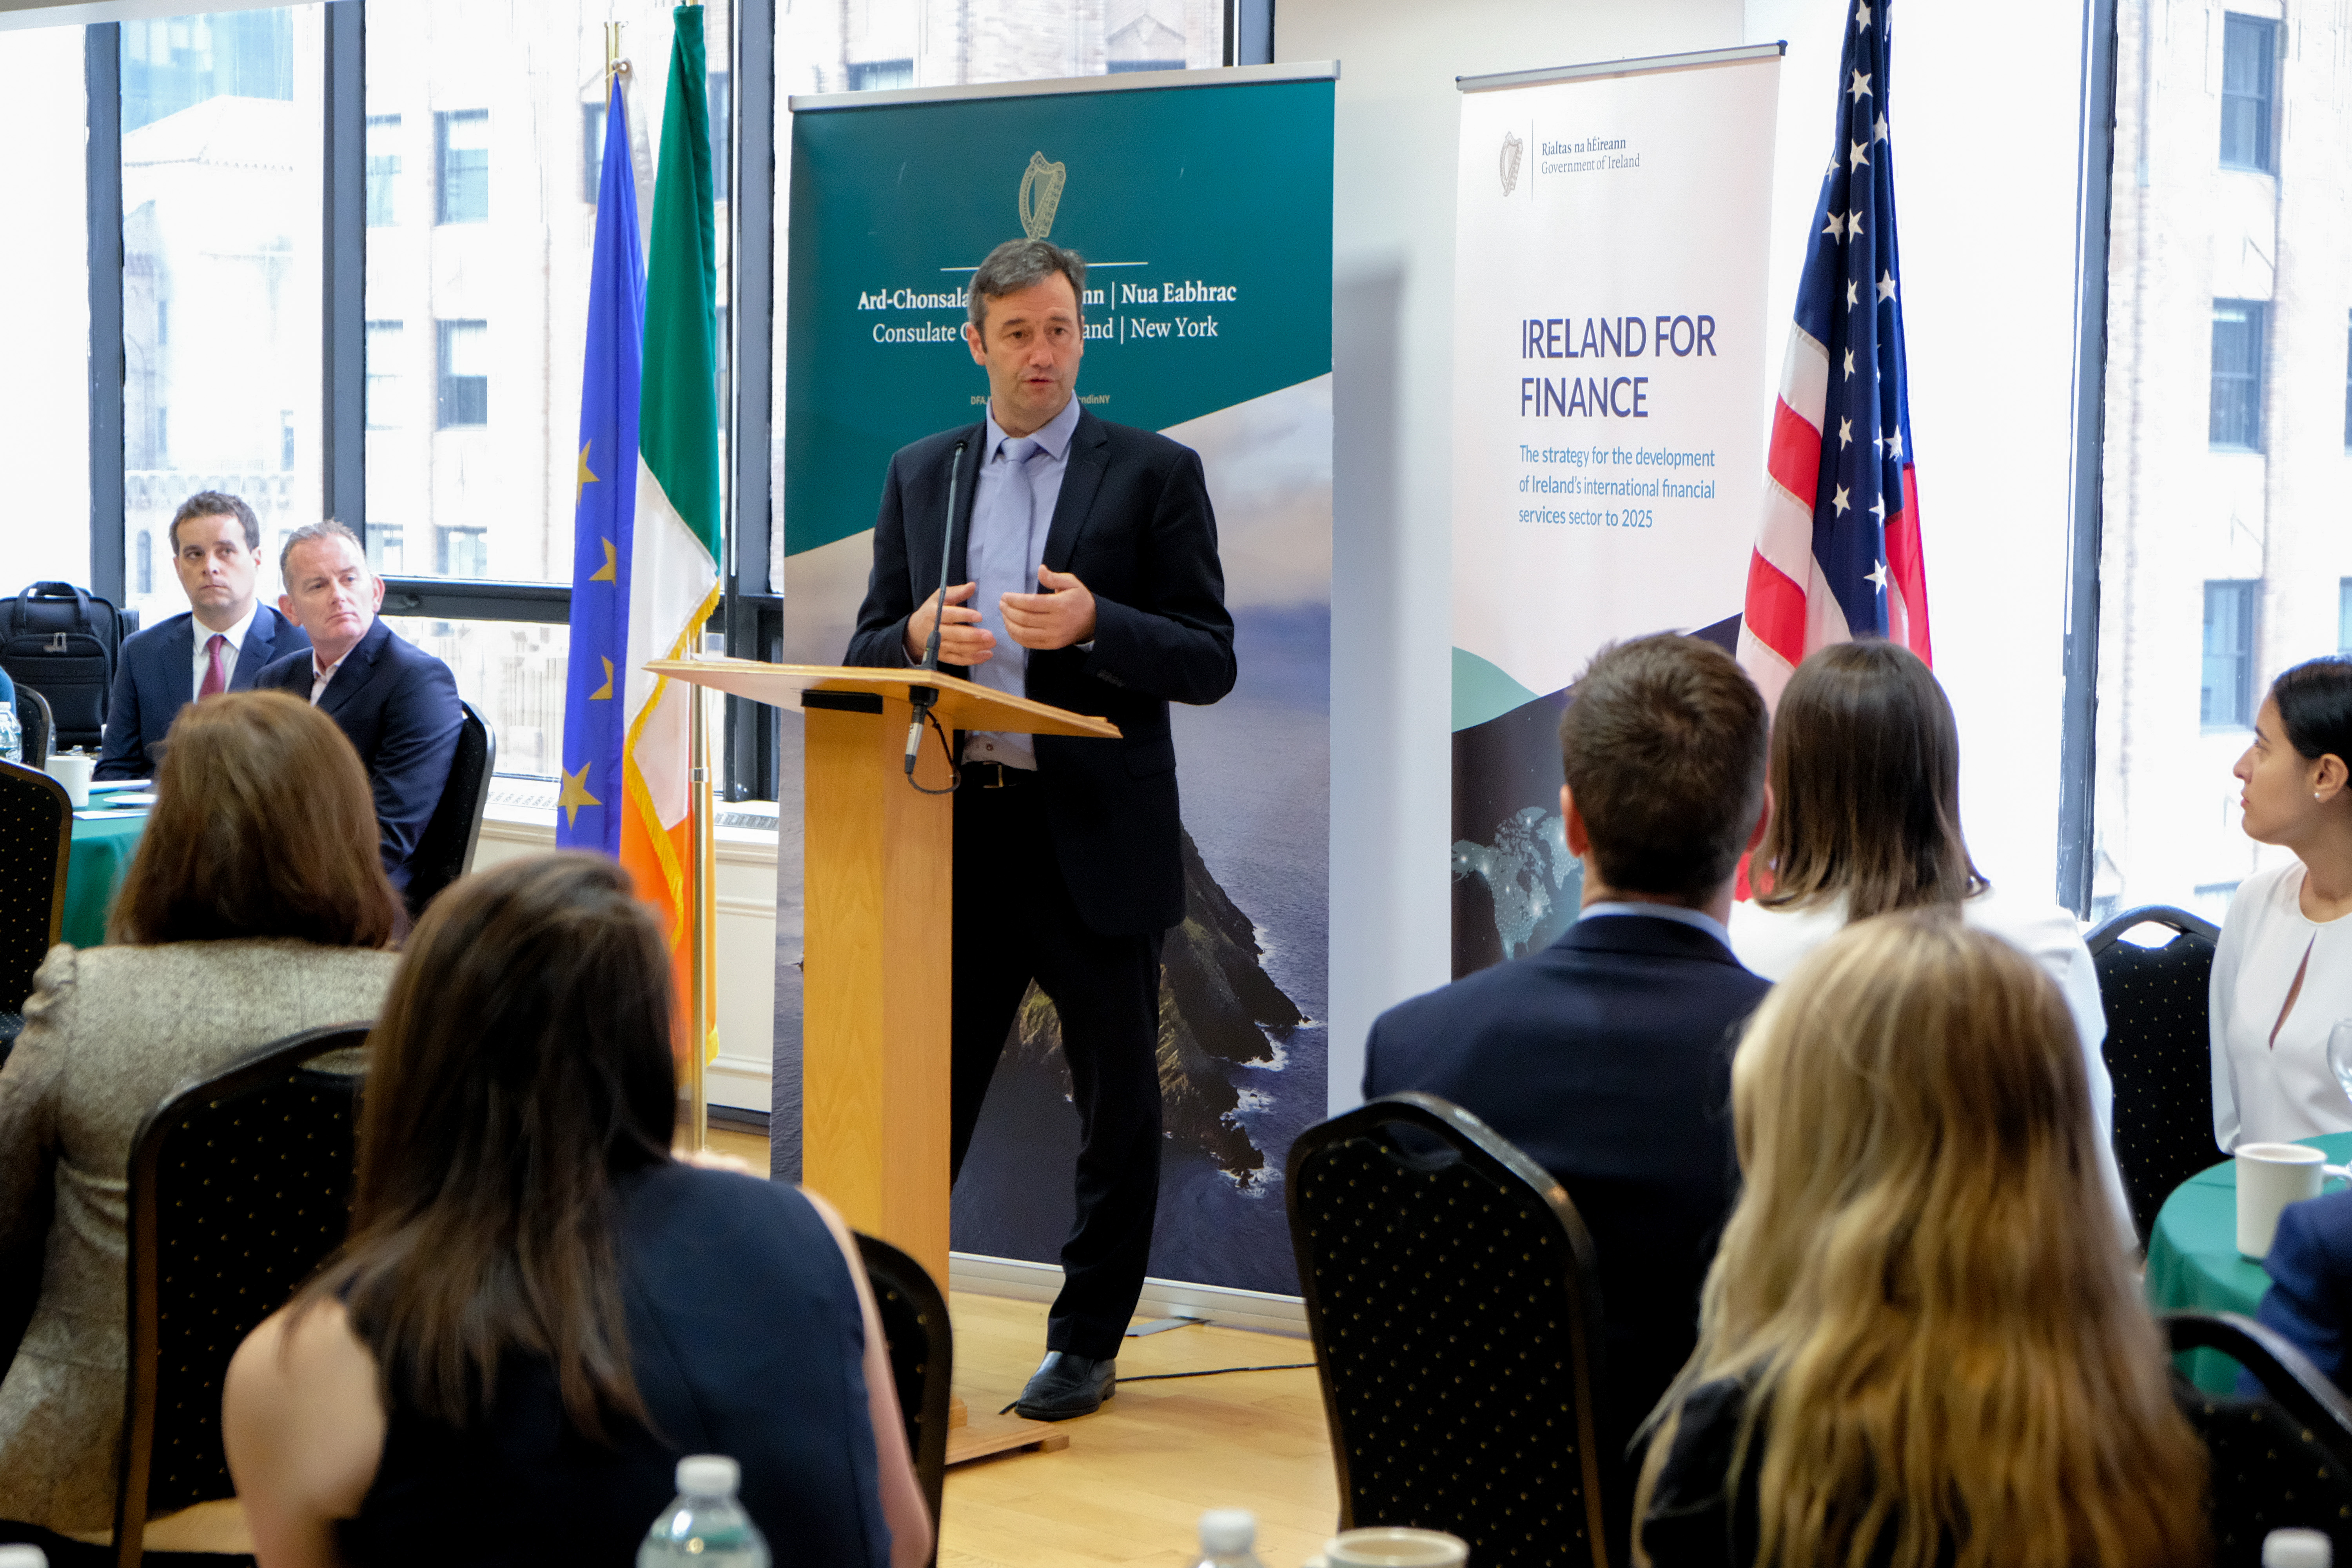 US Launch of Ireland for Finance Strategy